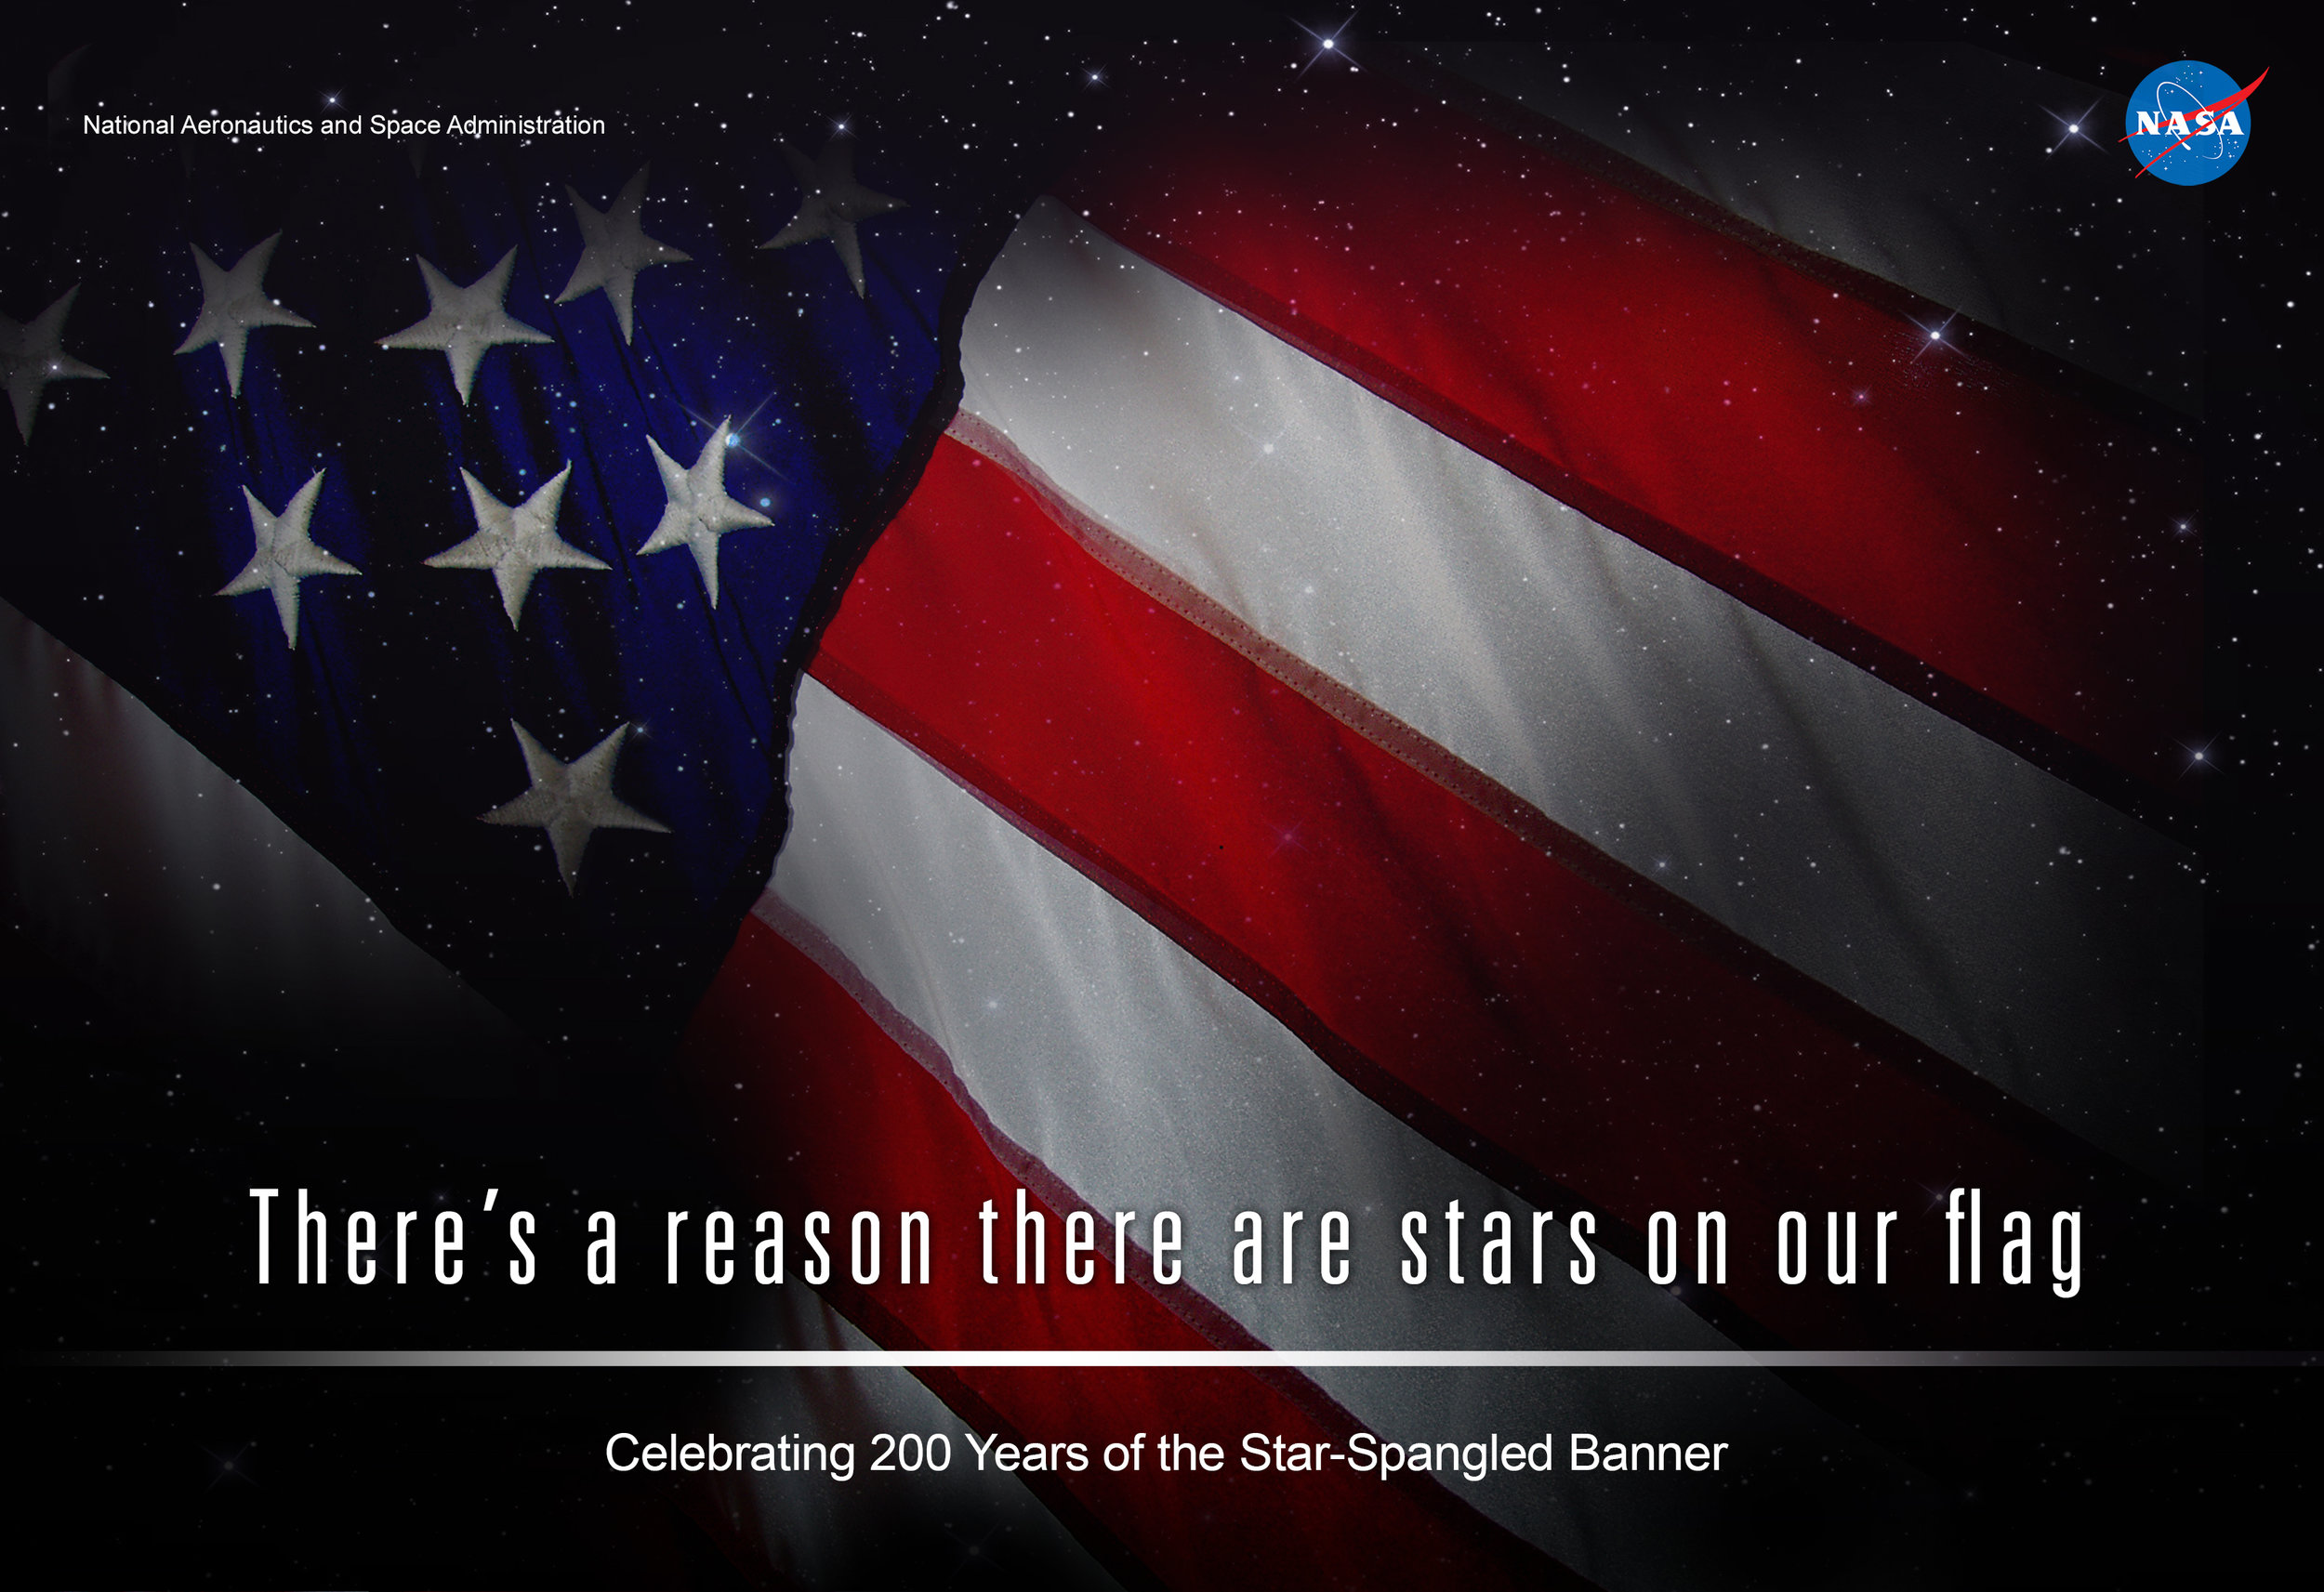 Print and social media creative for the anniversary of the Star Spangled Banner